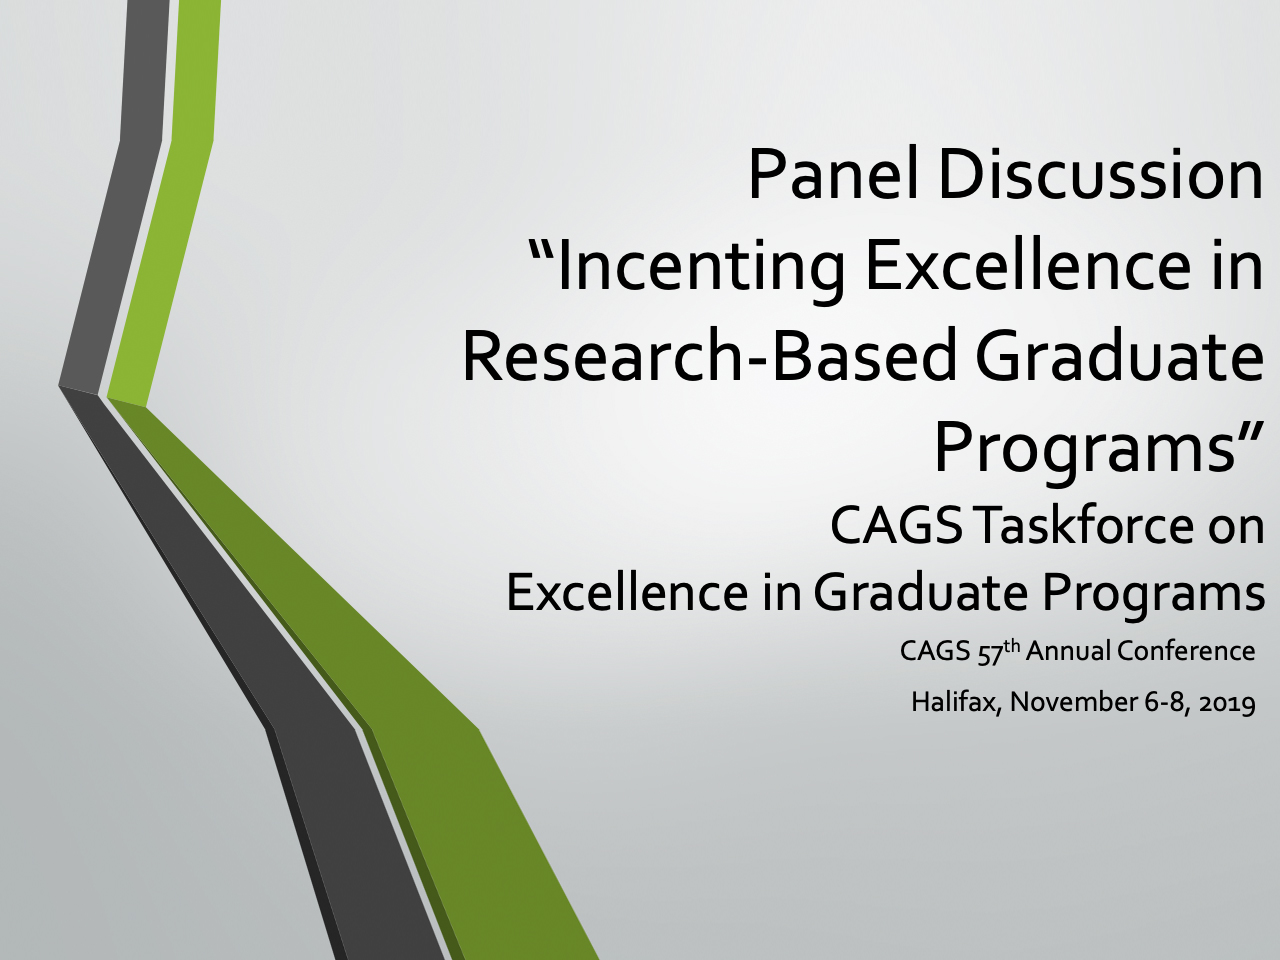 CAGS Taskforce on Excellence in Graduate Programs